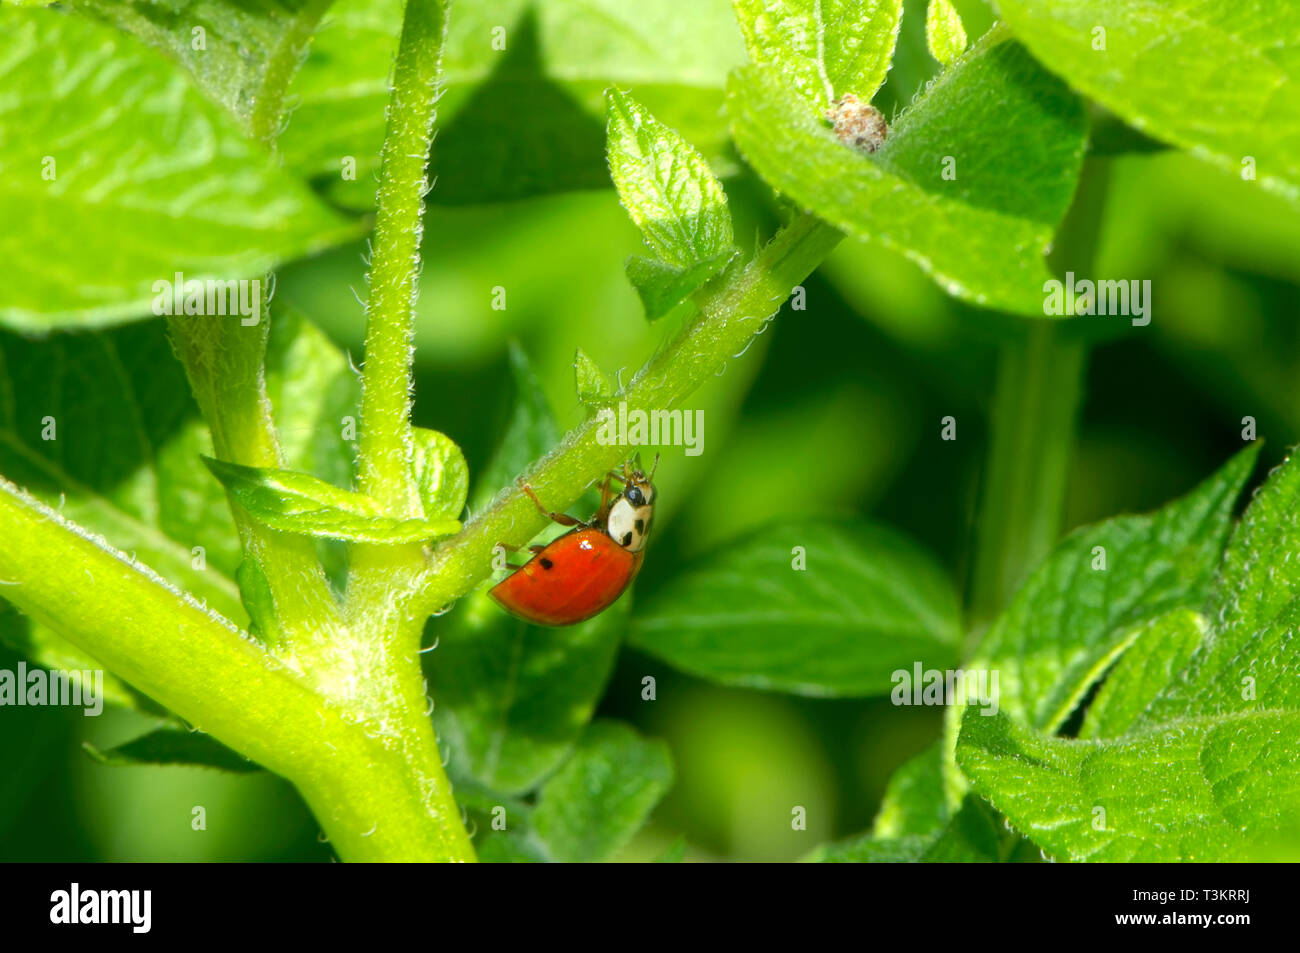 An Asian Lady Beetle (Coccinellidae) on a garden plant looking for aphids. Stock Photo